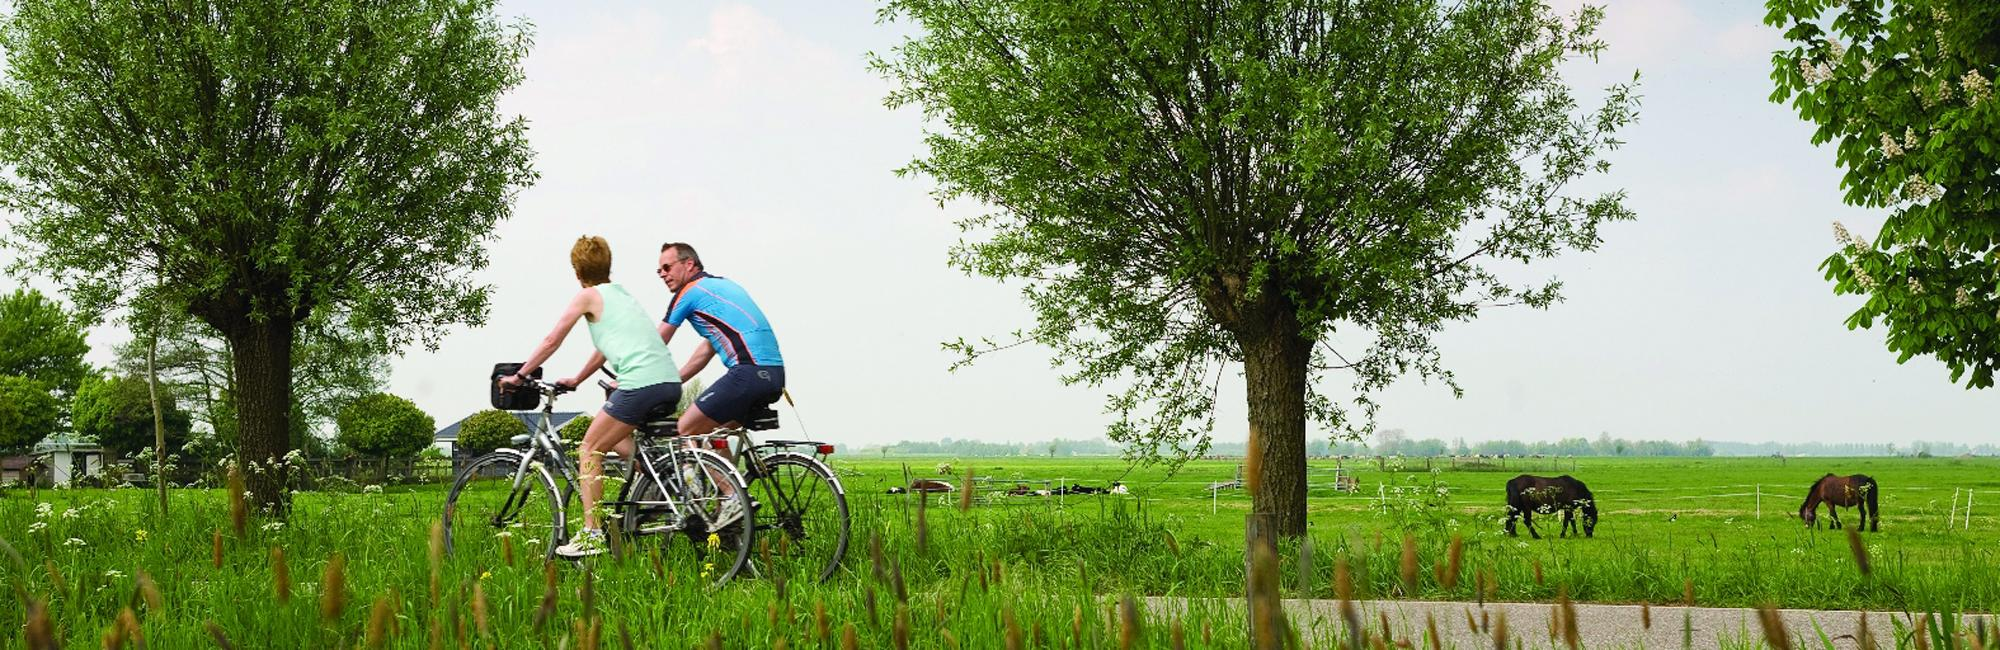 Dutch Bike Tours Radreisen IJsselmeer sportiv tour